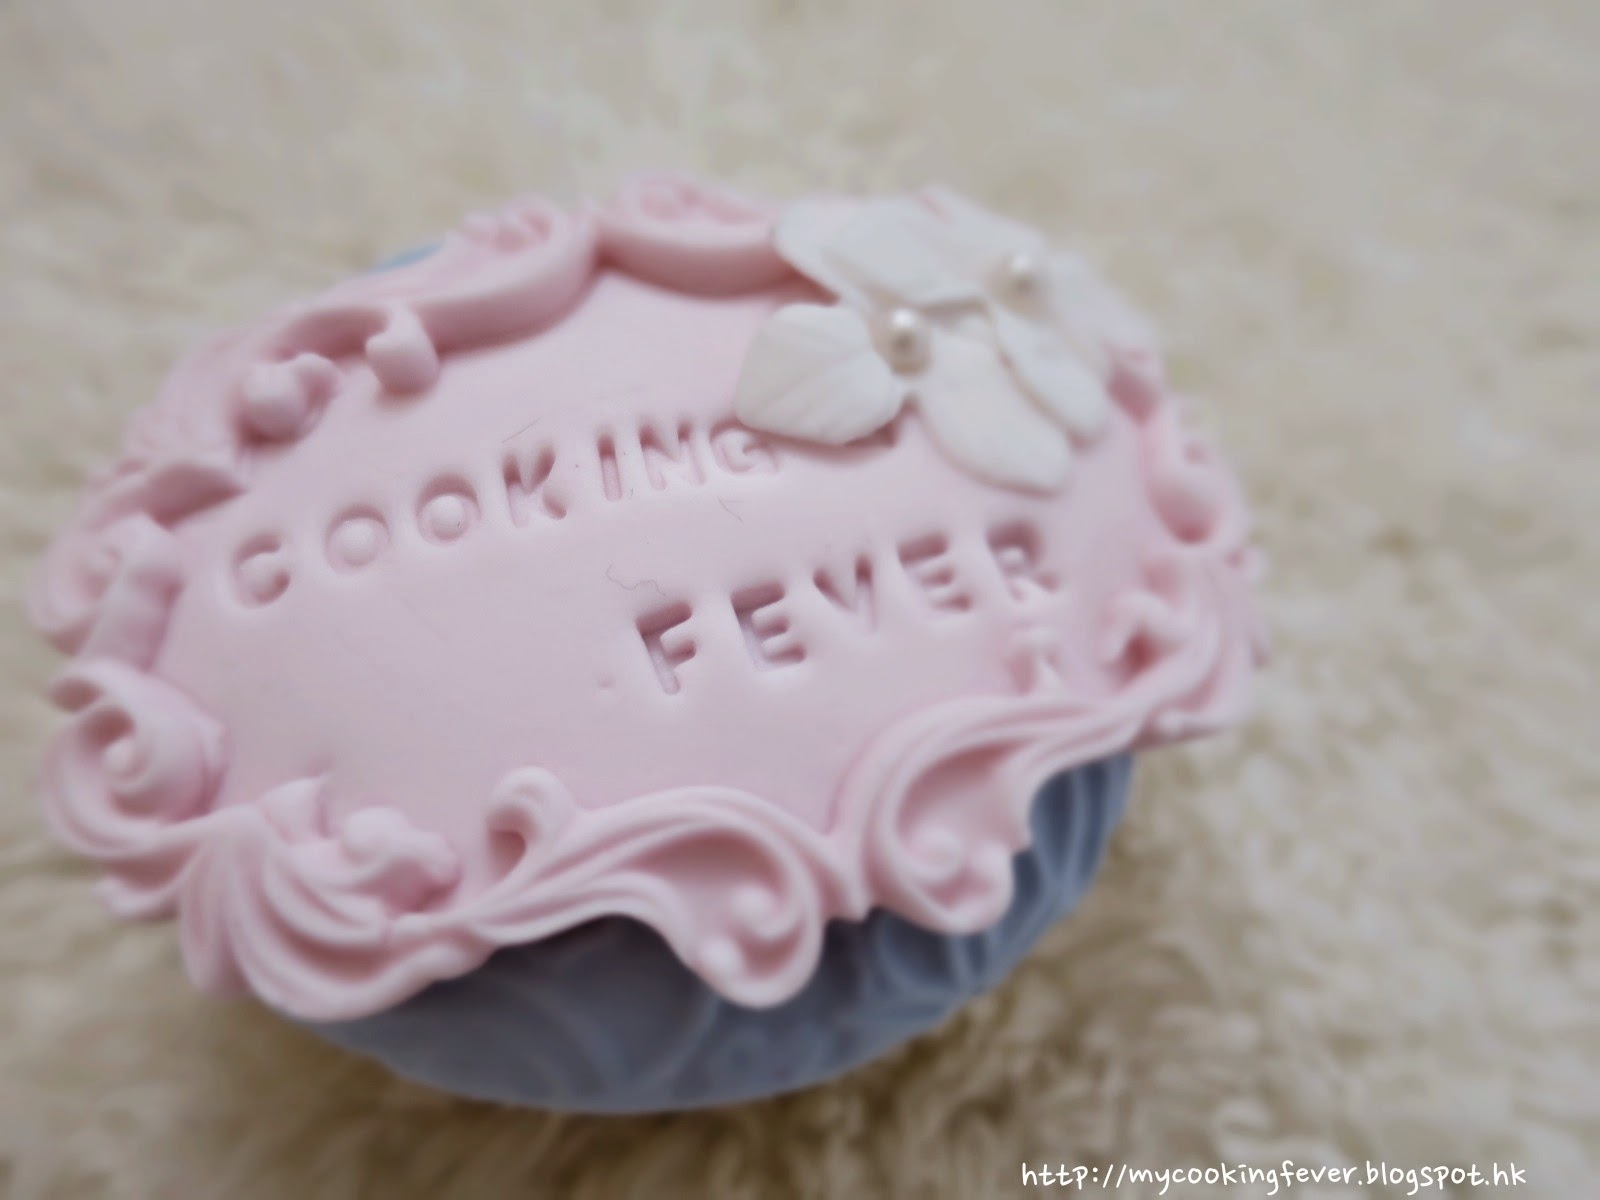 Cooking Fever Cupcake 2